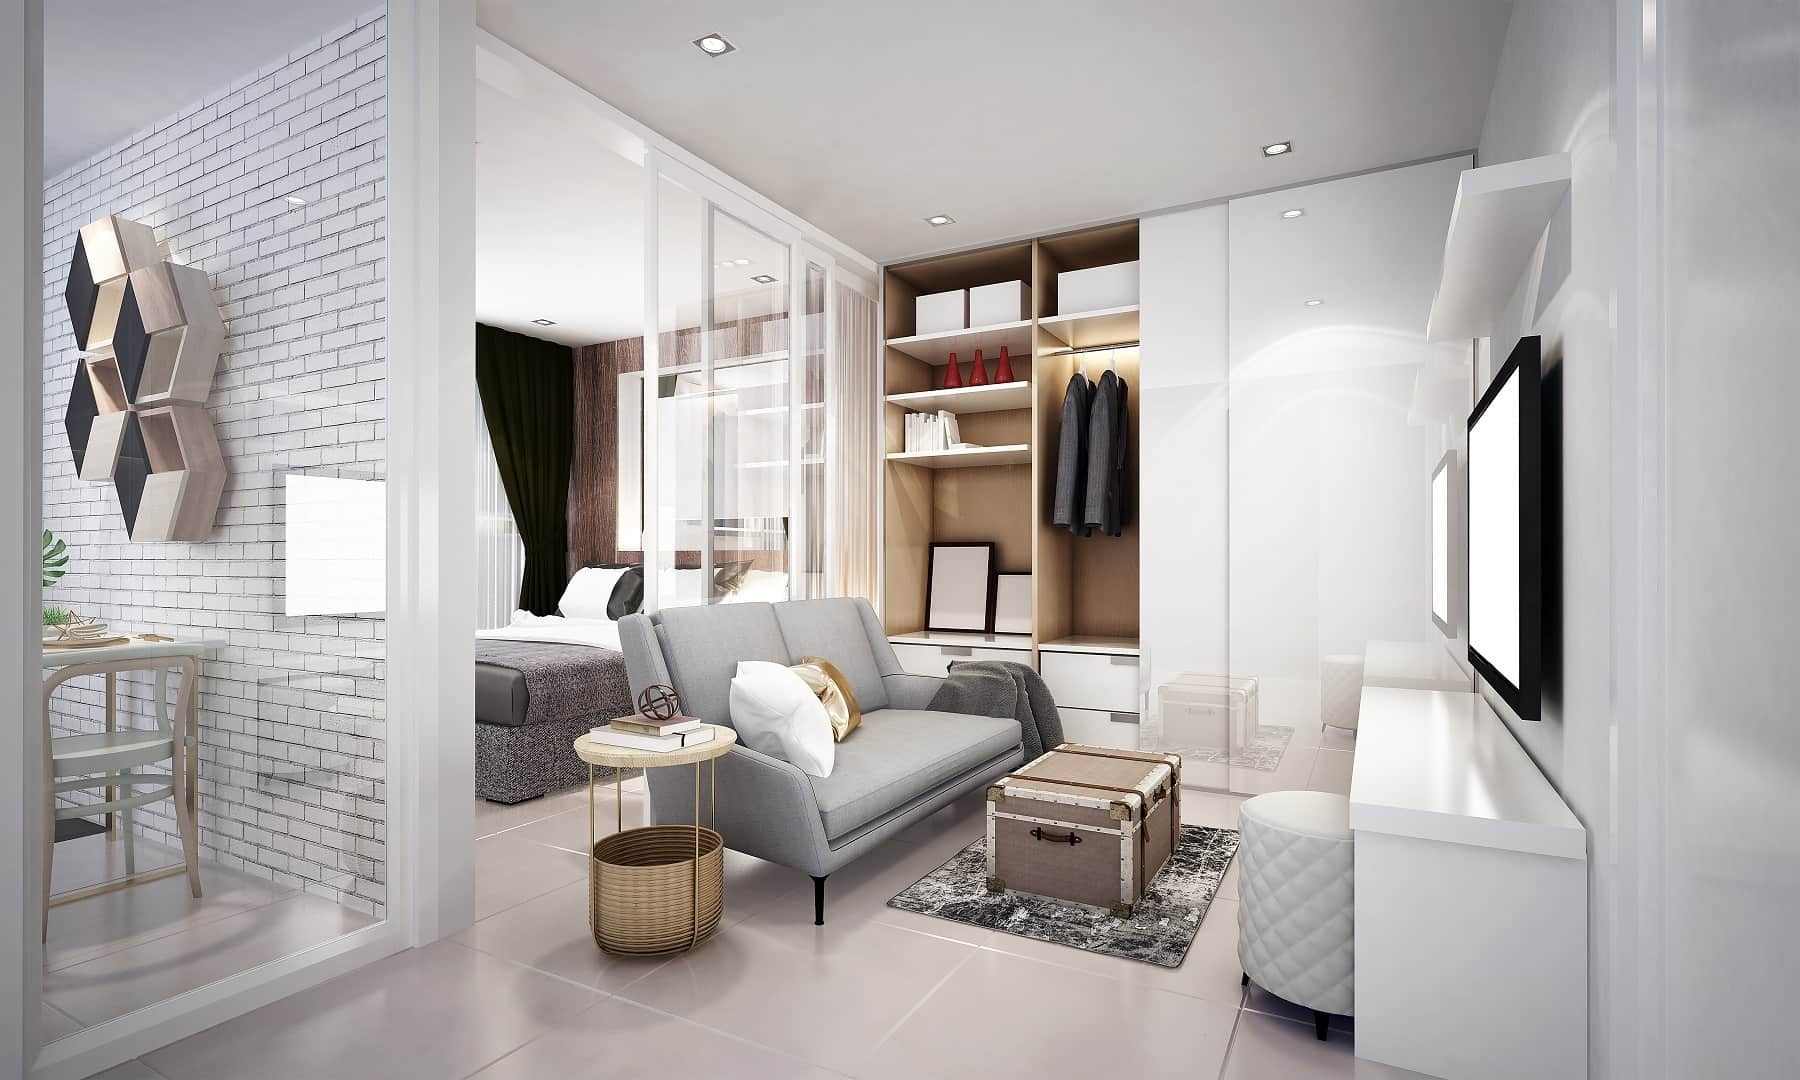 Turning Your Home into Heaven - Smart Ideas to Make it Happen. Well-organized interior space of the gray and white living room with glossy surfaces